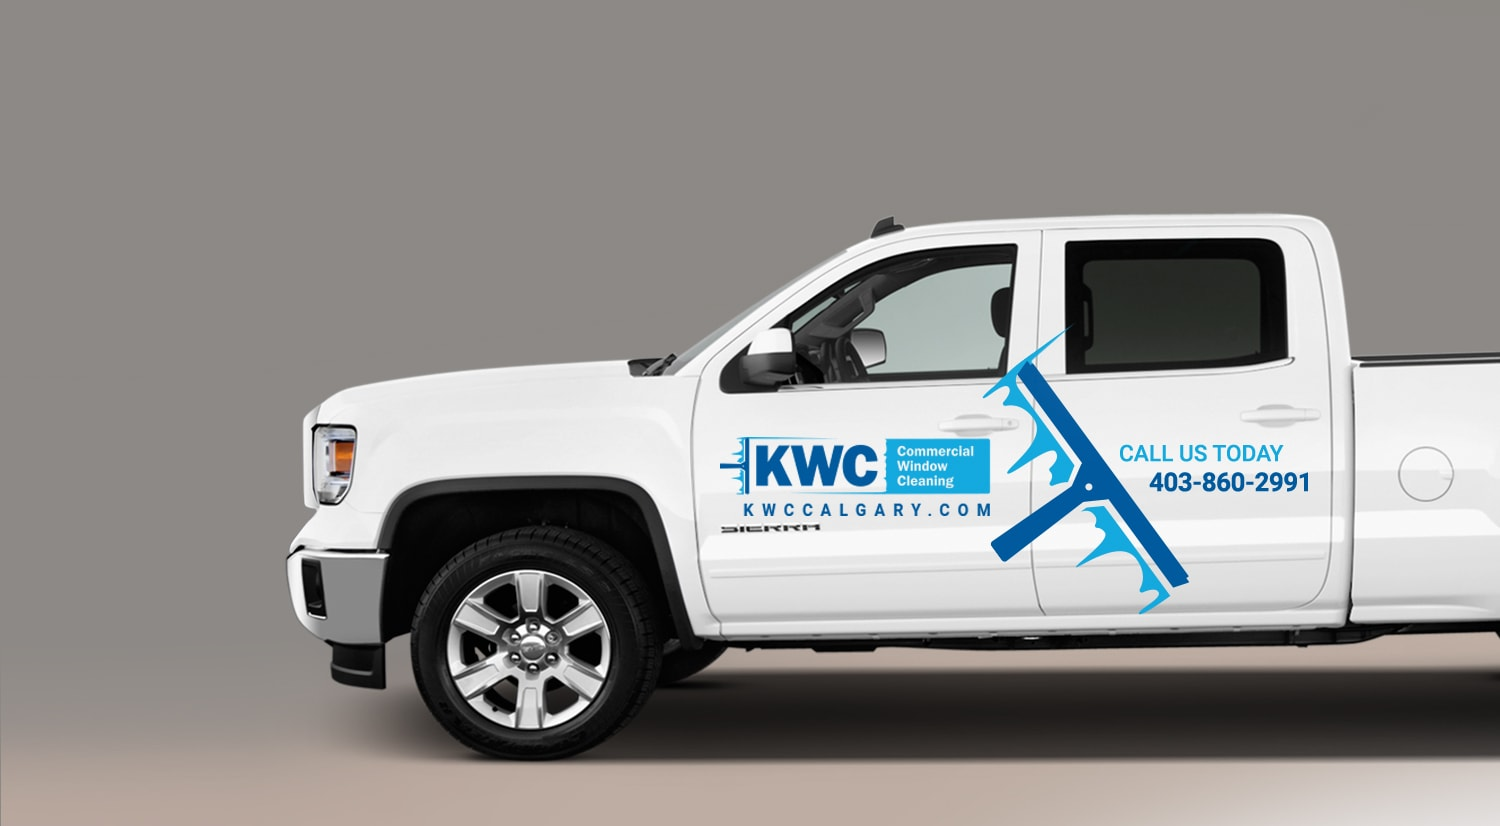 KWC Vehicle Branding